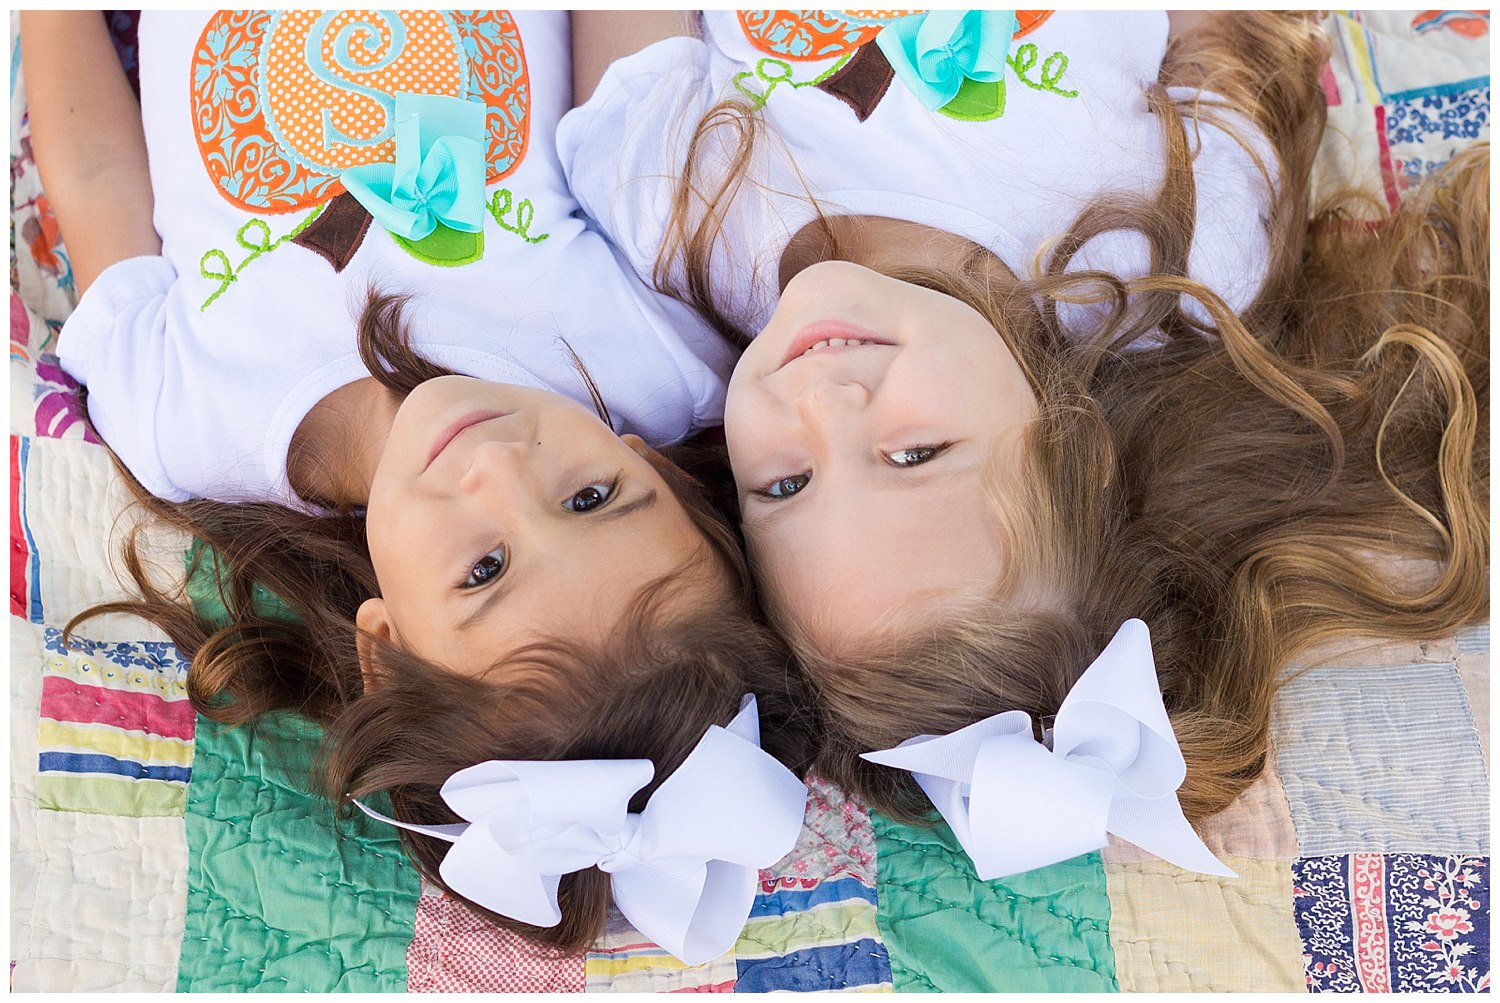 Ocean Springs family photographer - twin girls portrait on vintage quilt